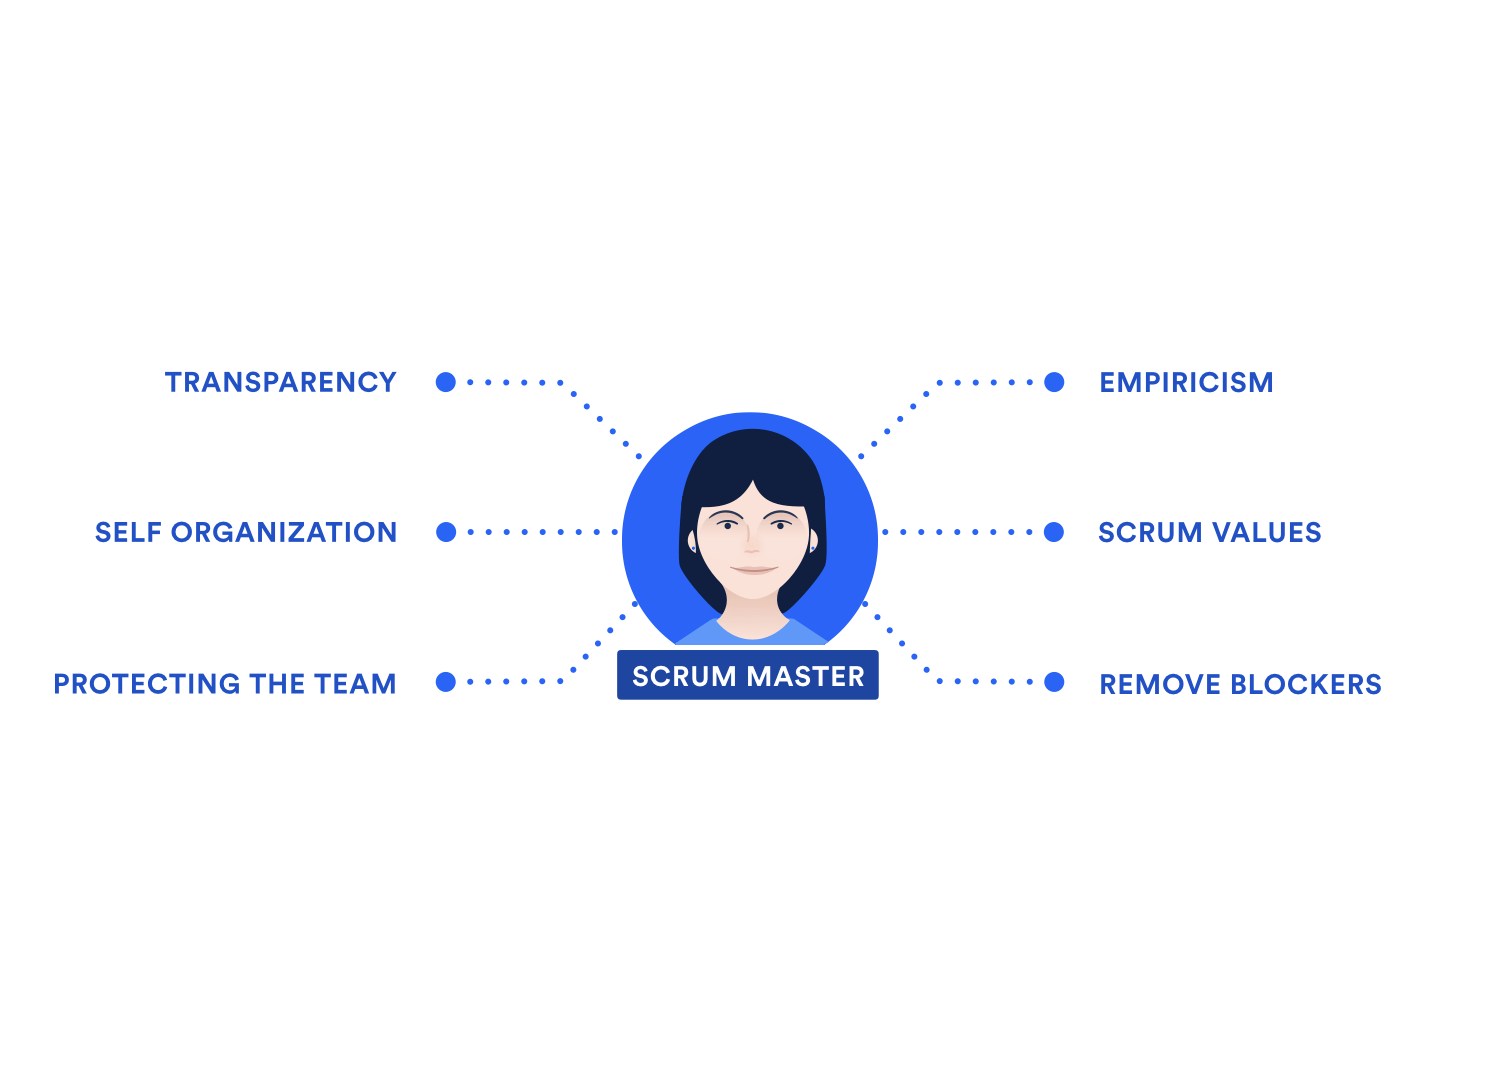 A diagram showing the scrum master's responsibilities: Transparency, Empiricism, Self organization, Scrum values, Protecting the team, Remove blockers.